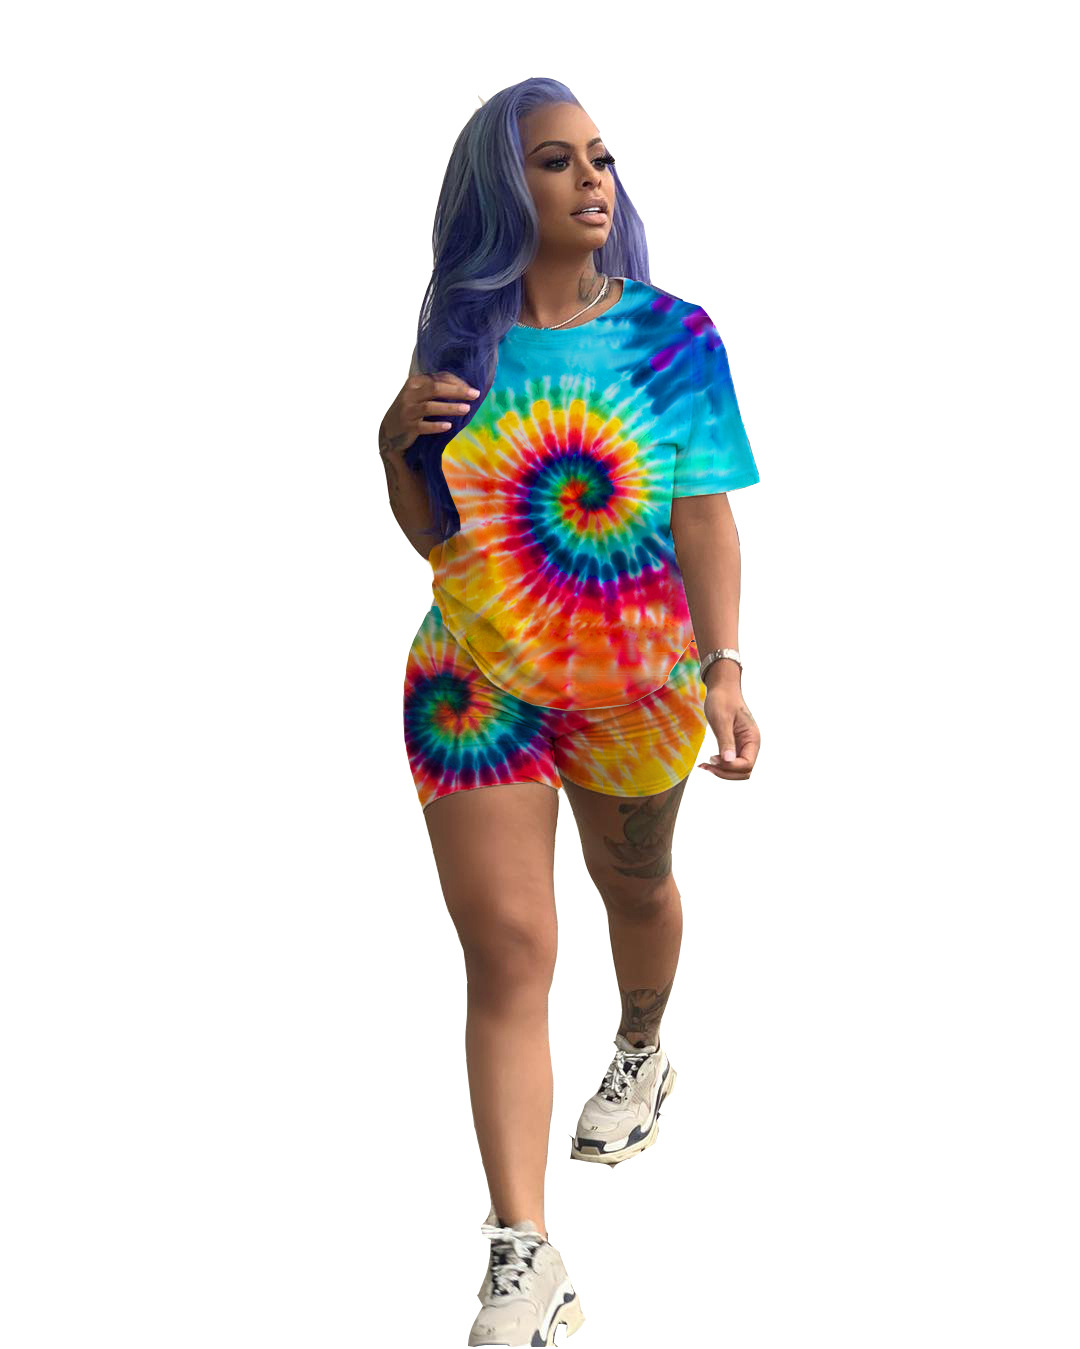 Women New Summer Black Hole Tie Dye 3d Print Short Sleeve O-neck T Shirts & Shorts Suit Two Piece Set Sporty Tracksuit LY5047